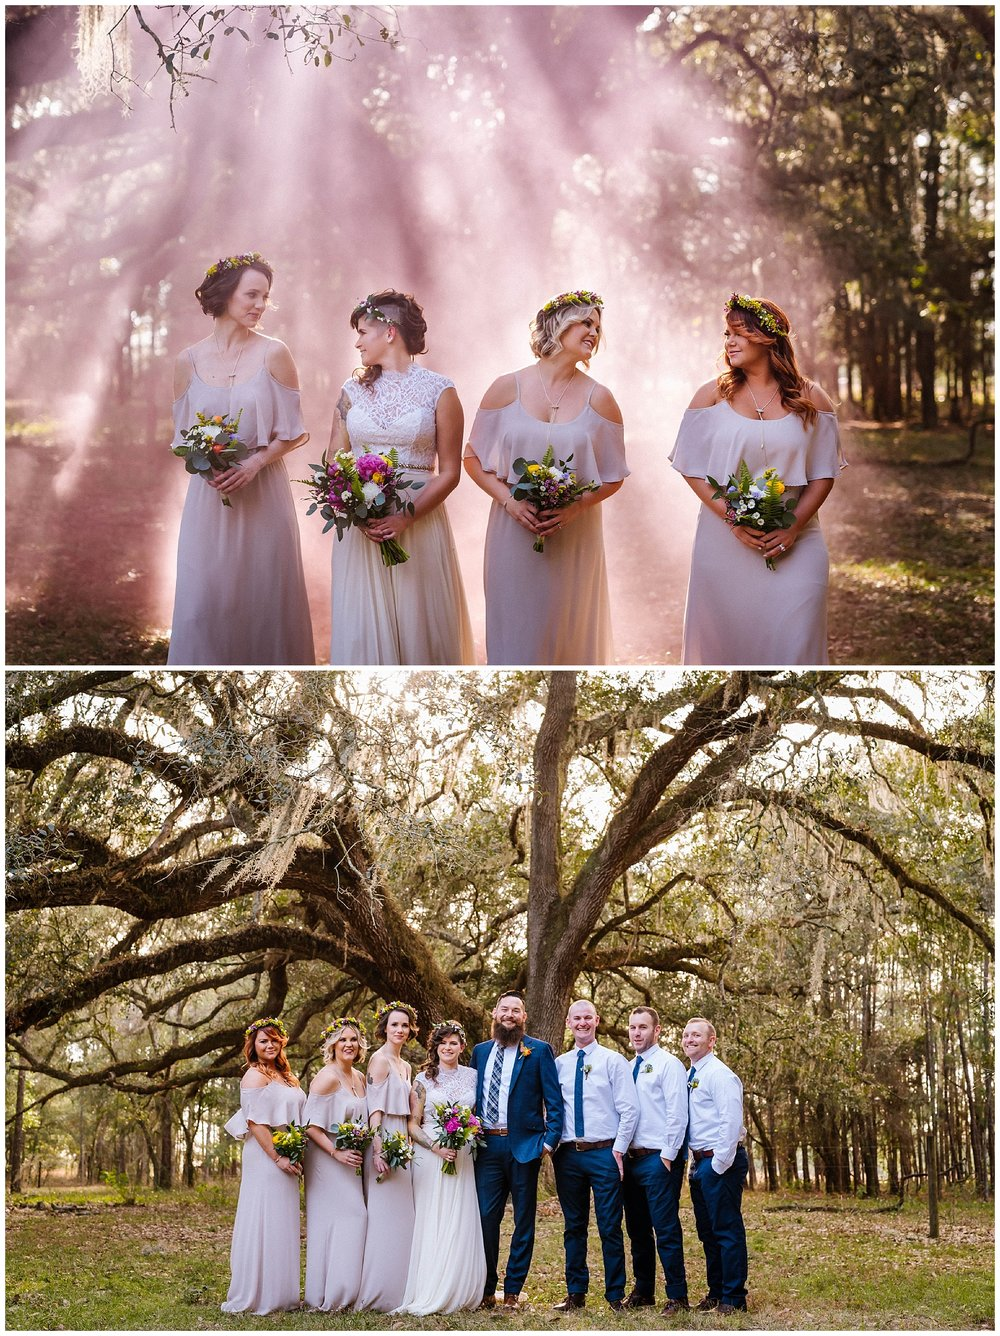 magical-outdoor-florida-wedding-smoke-bombs-flowers-crown-beard_0024.jpg